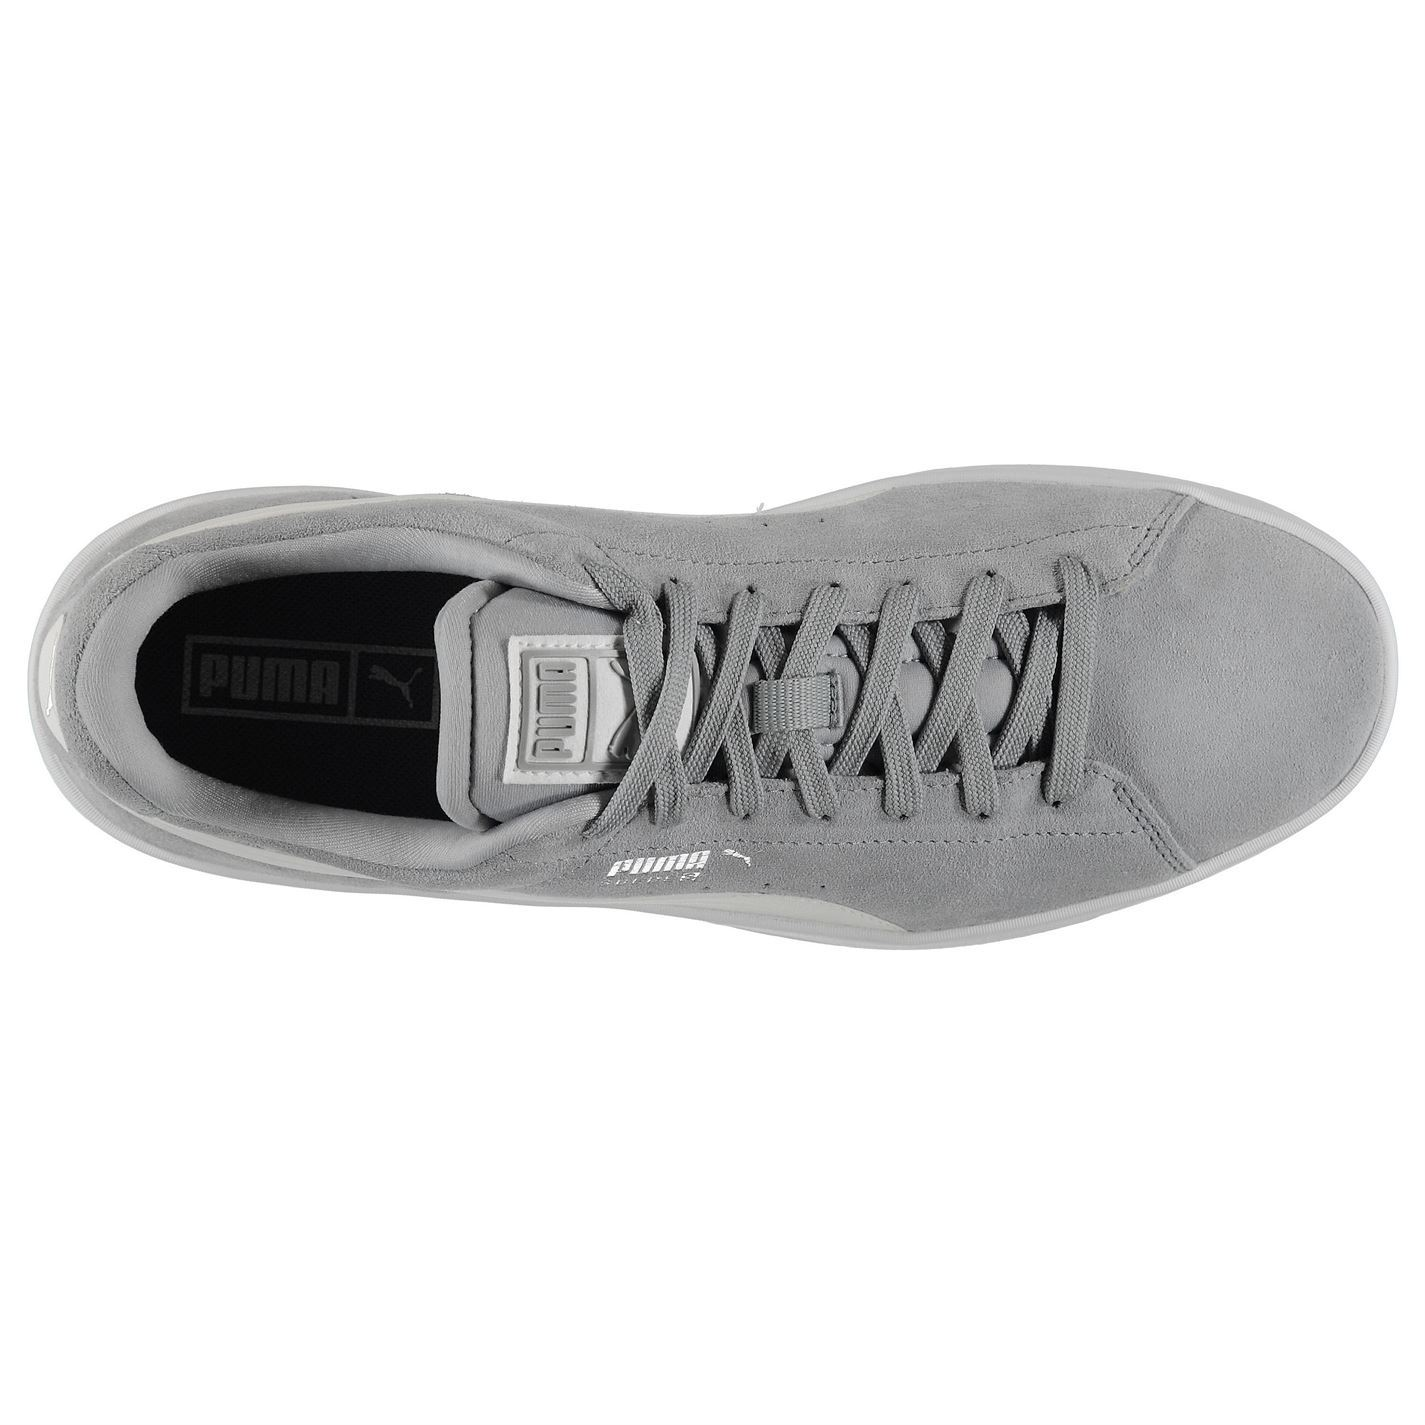 ... Puma Suede S Trainers Mens Grey/White Casual Sneakers Shoes Footwear ...